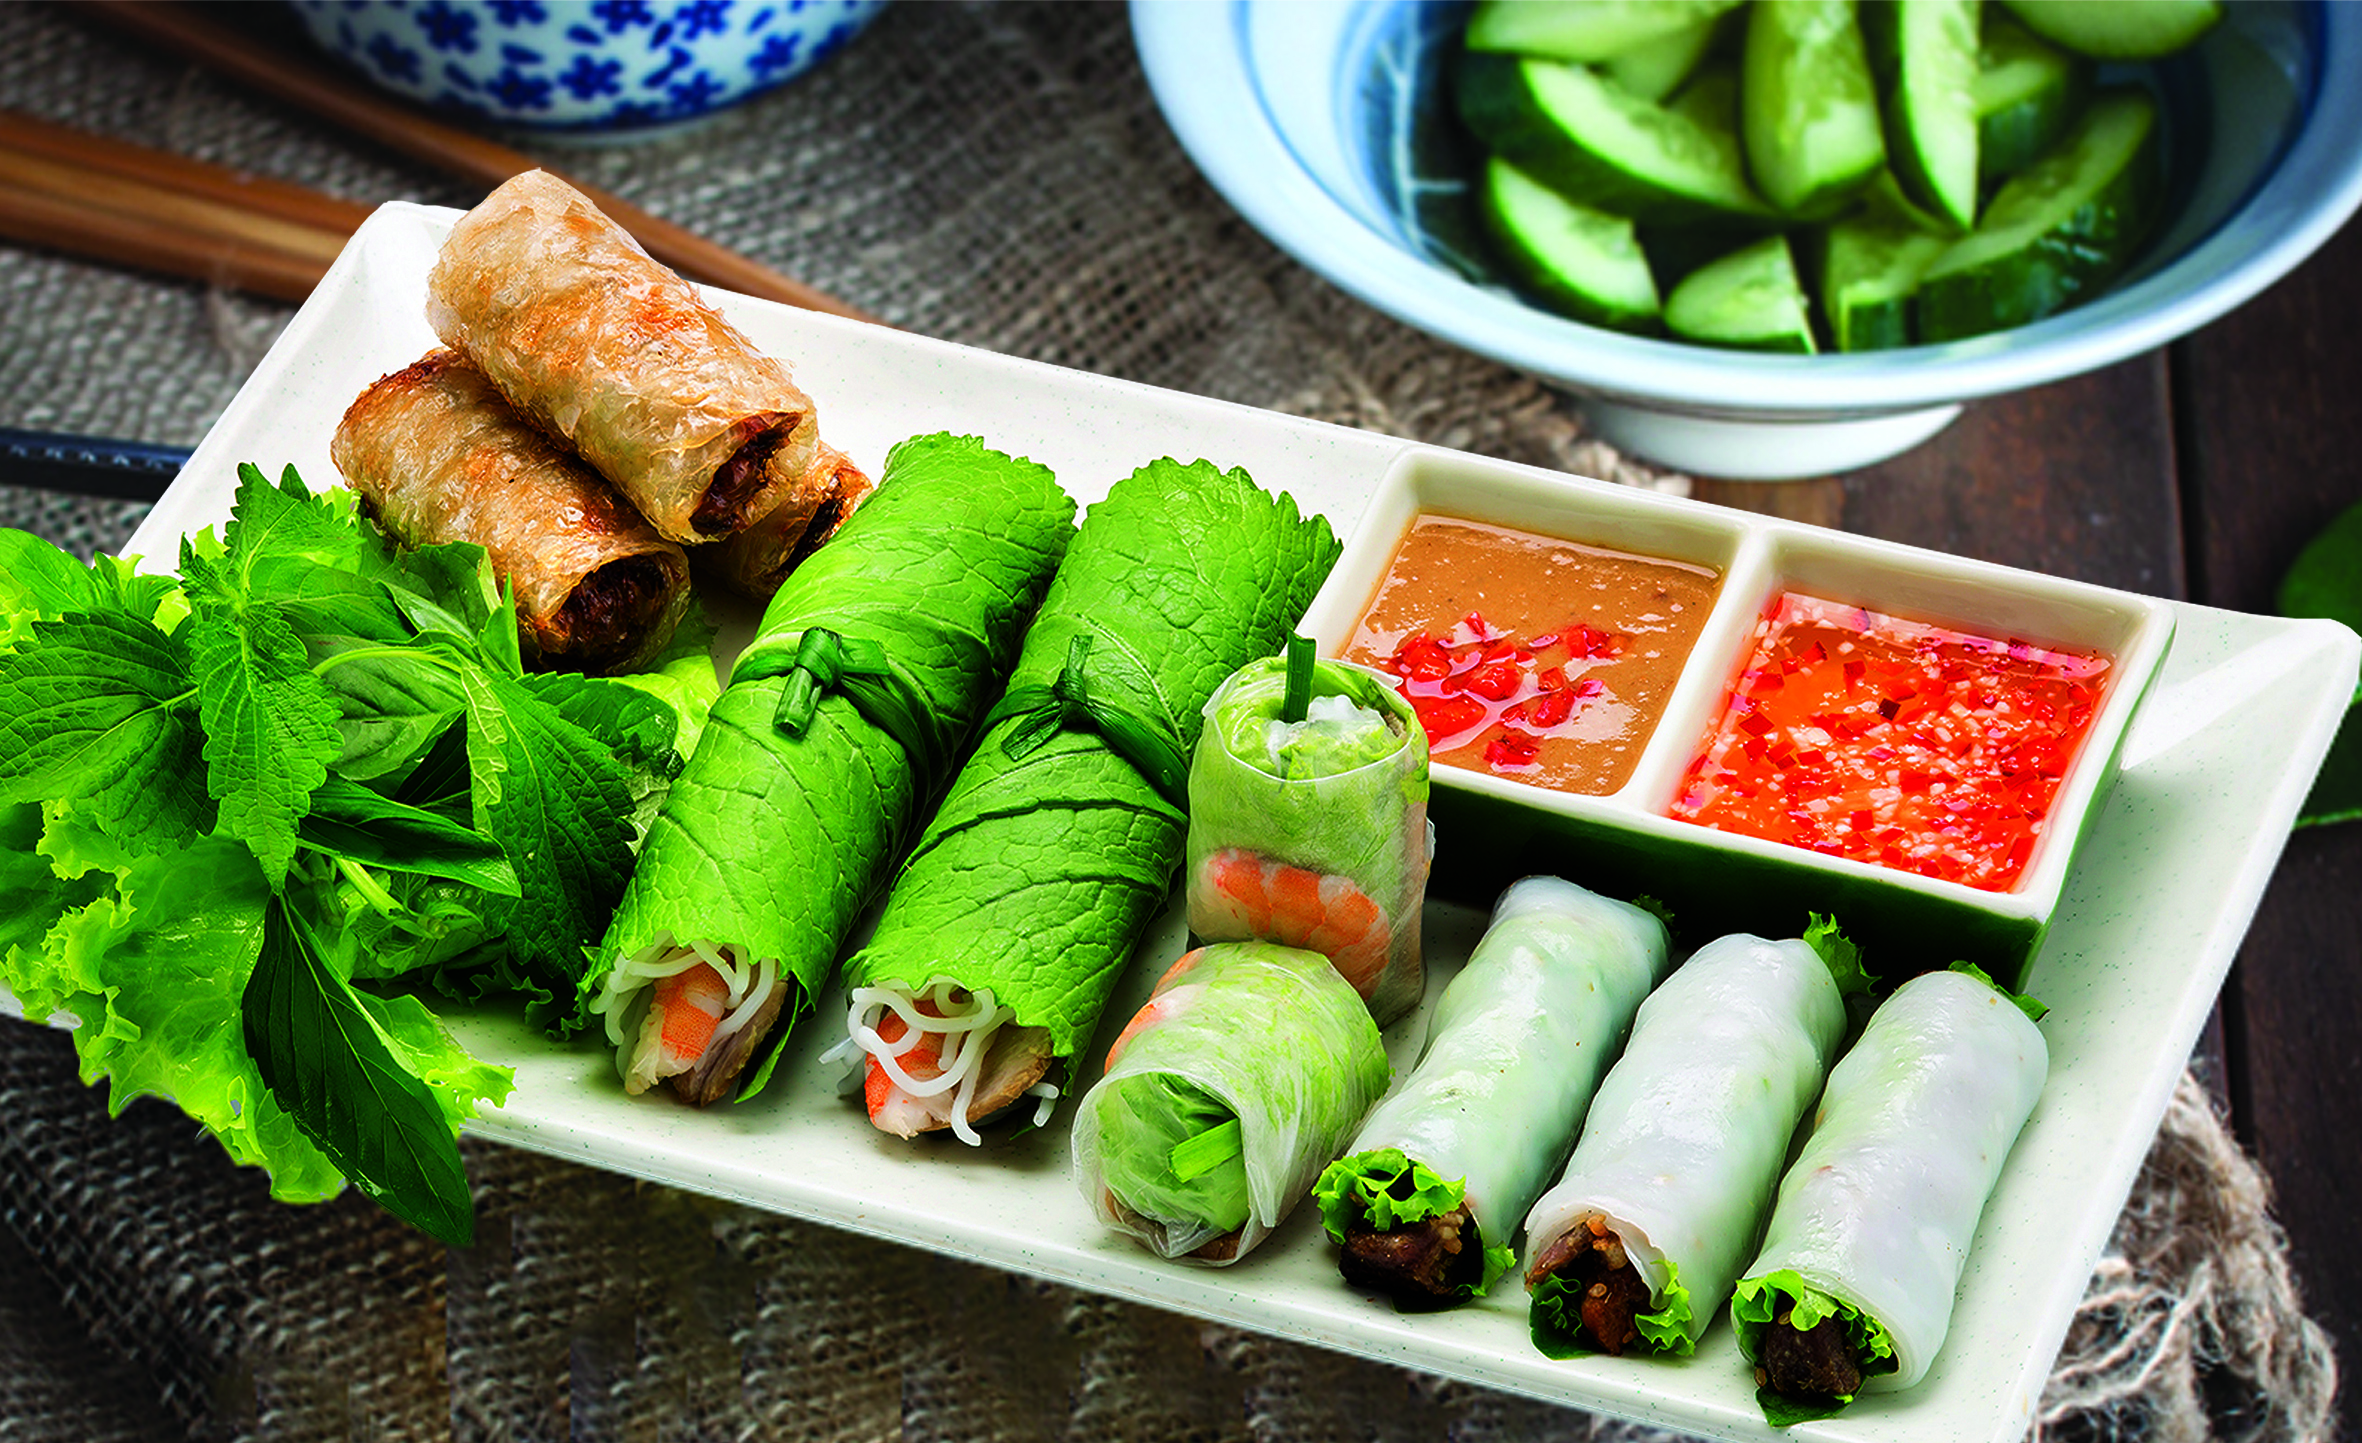 Wrap & Roll Vietnamese Restaurant Singapore